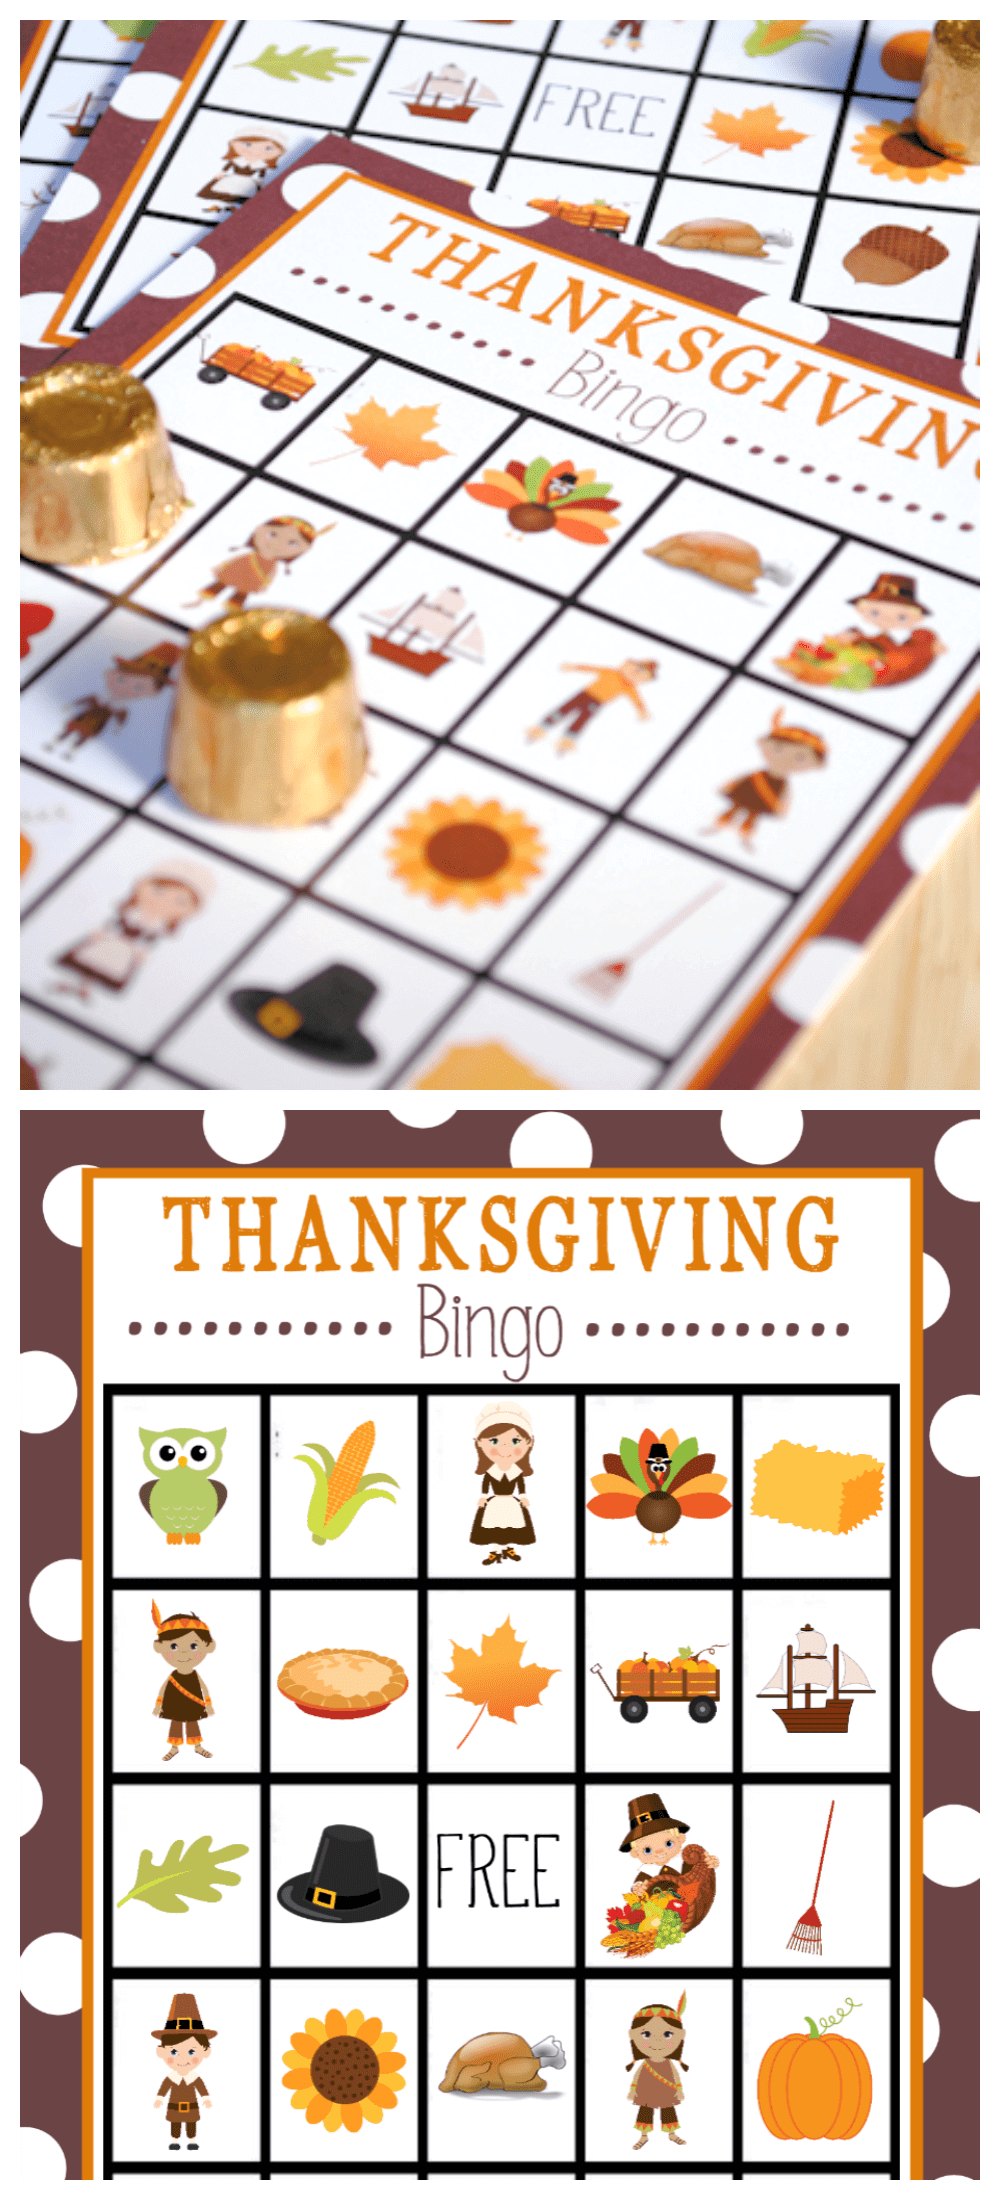 20 Fun Thanksgiving Party Game Ideas For Kids And Family In 2020 Thanksgiving Bingo Thanksgiving Fun Thanksgiving Games For Kids